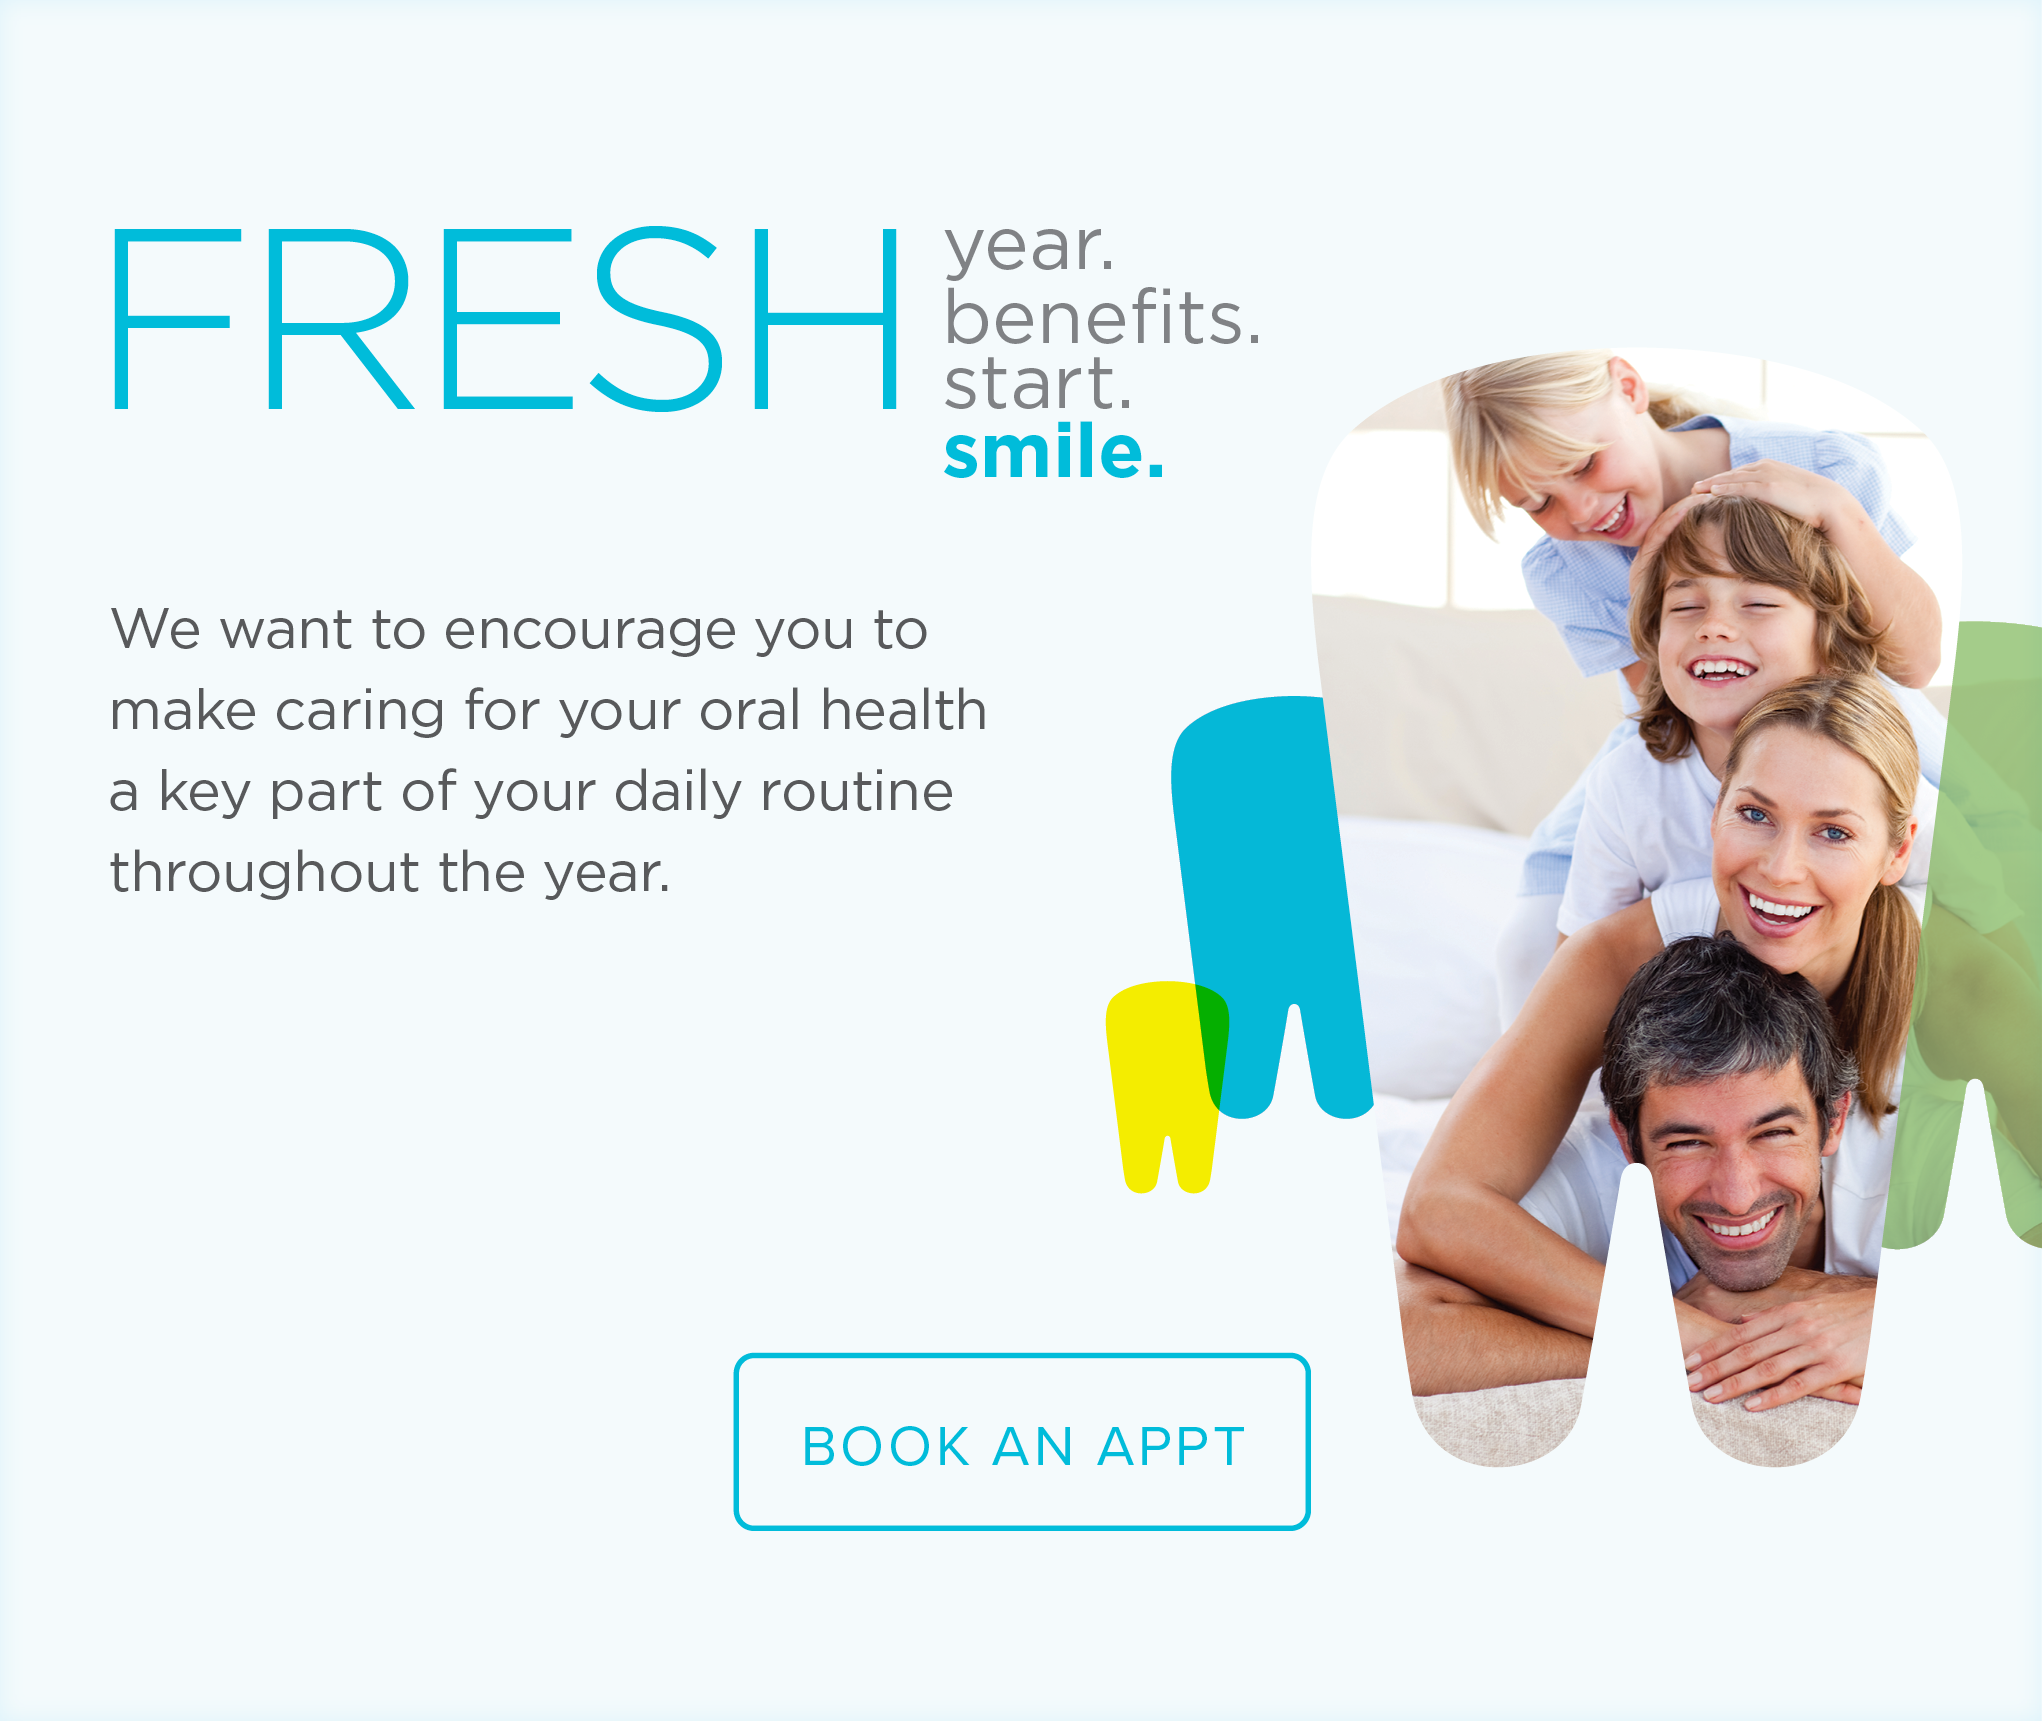 Preston Modern Dentistry - Make the Most of Your Benefits